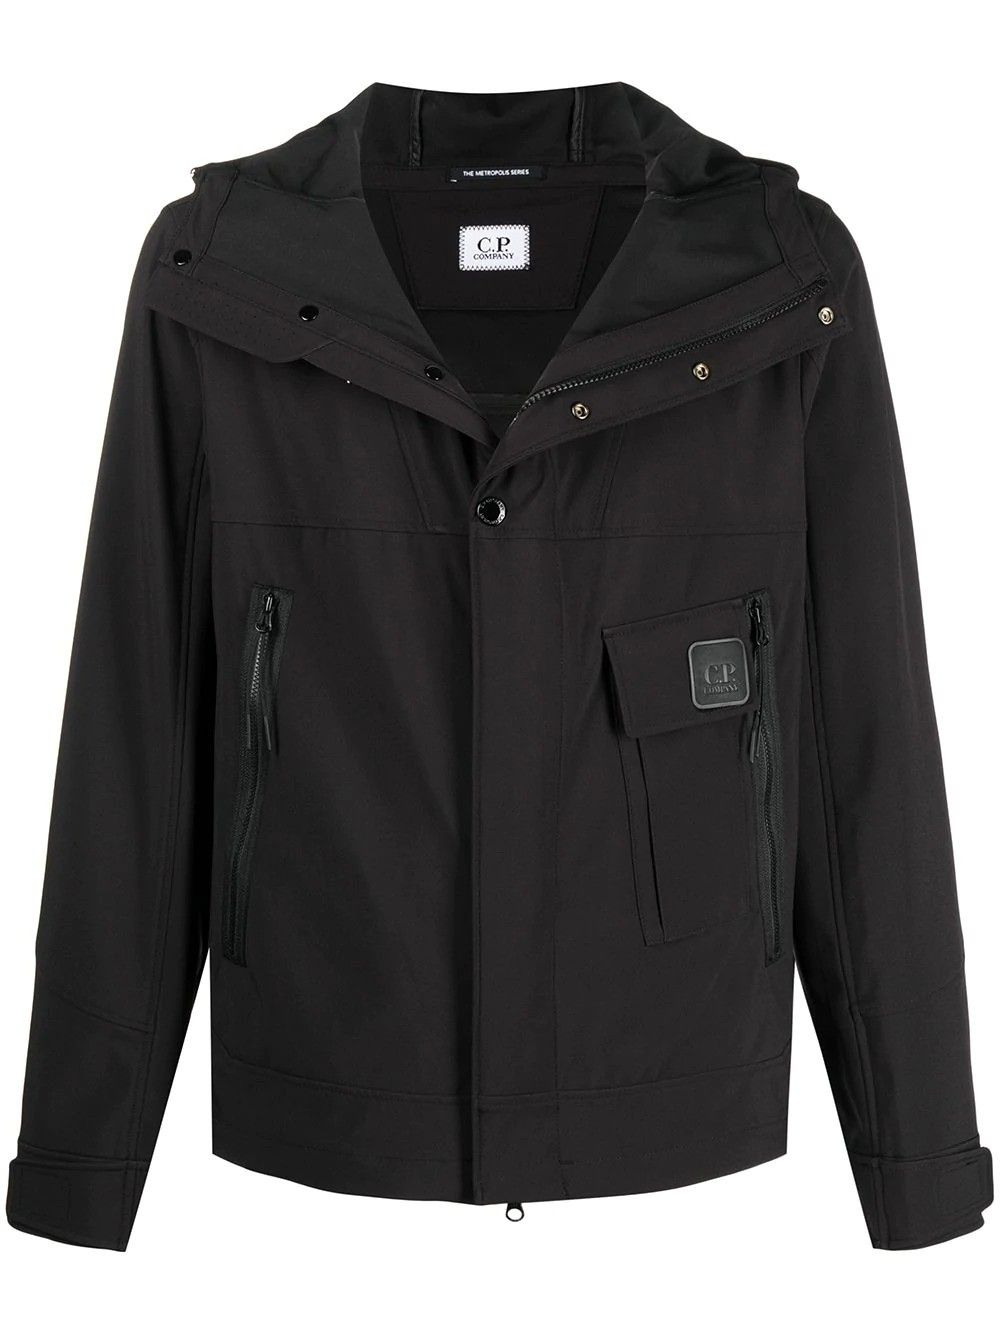 C.p. Company Jackets CP COMPANY MEN'S 10CMOW019A005968A999 BLACK POLYESTER OUTERWEAR JACKET